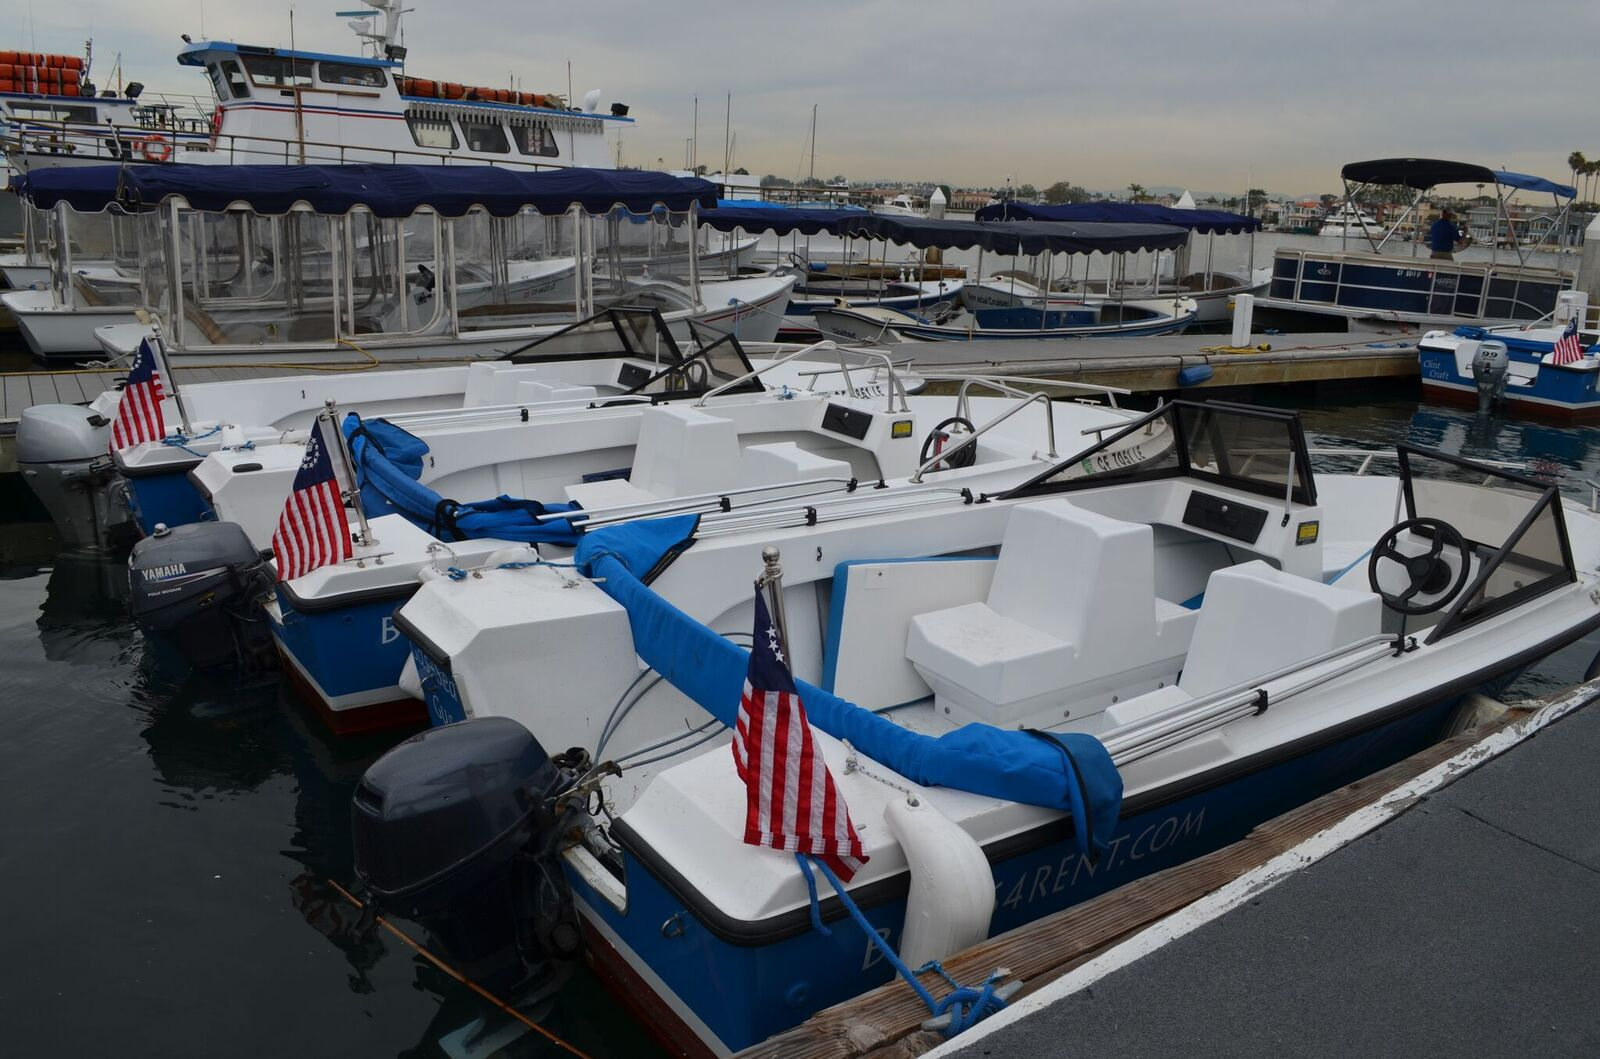 Newport Beach Harbor Boat Rental The Best Beaches In The